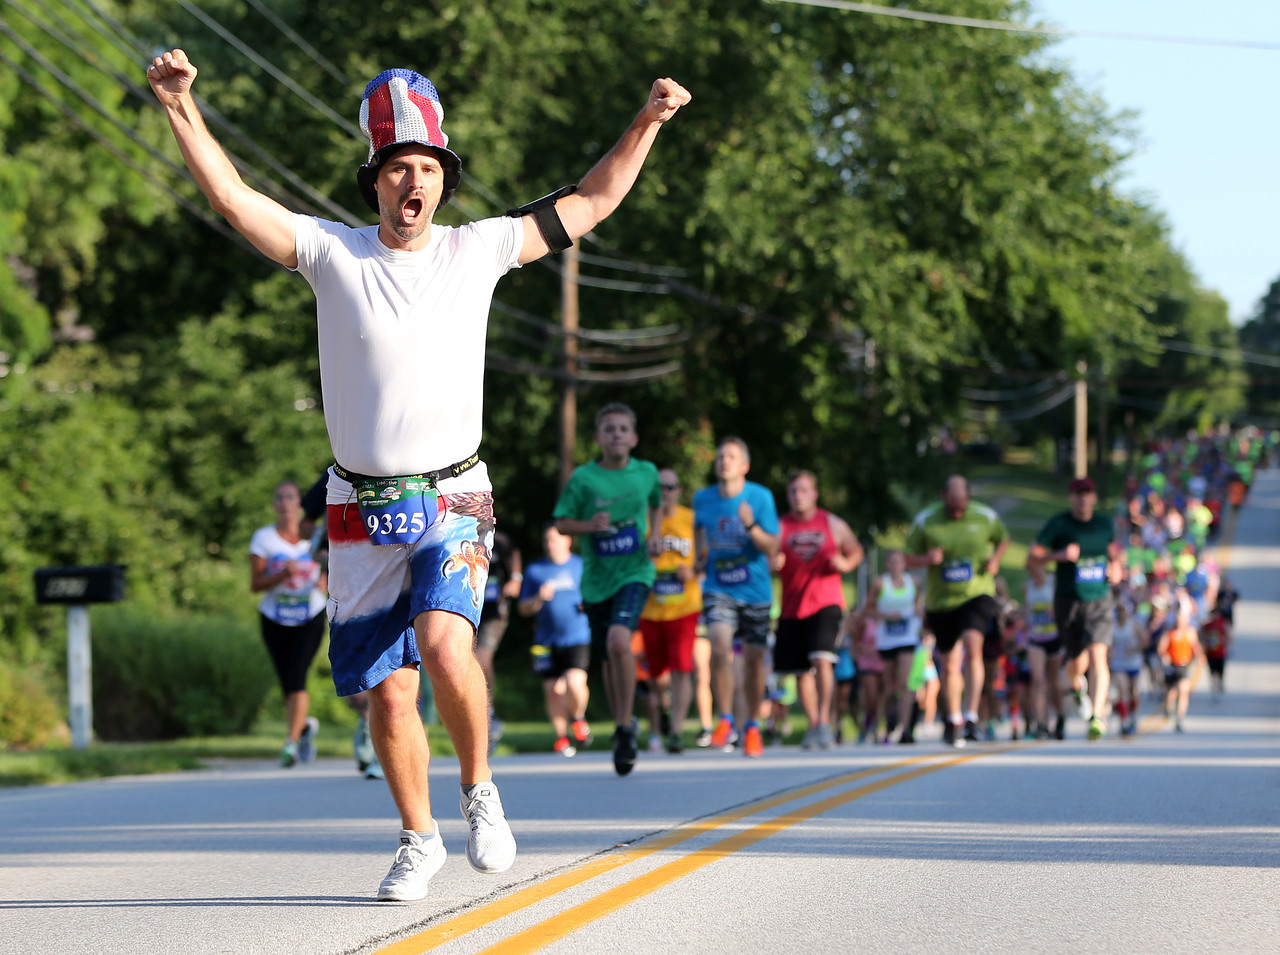 AARON JOSEFCZYK / GAZETTE Kyle Goodwin reacts as he runs during a 5-kilometer race at the Medina Twin Sizzler event held Tuesday.